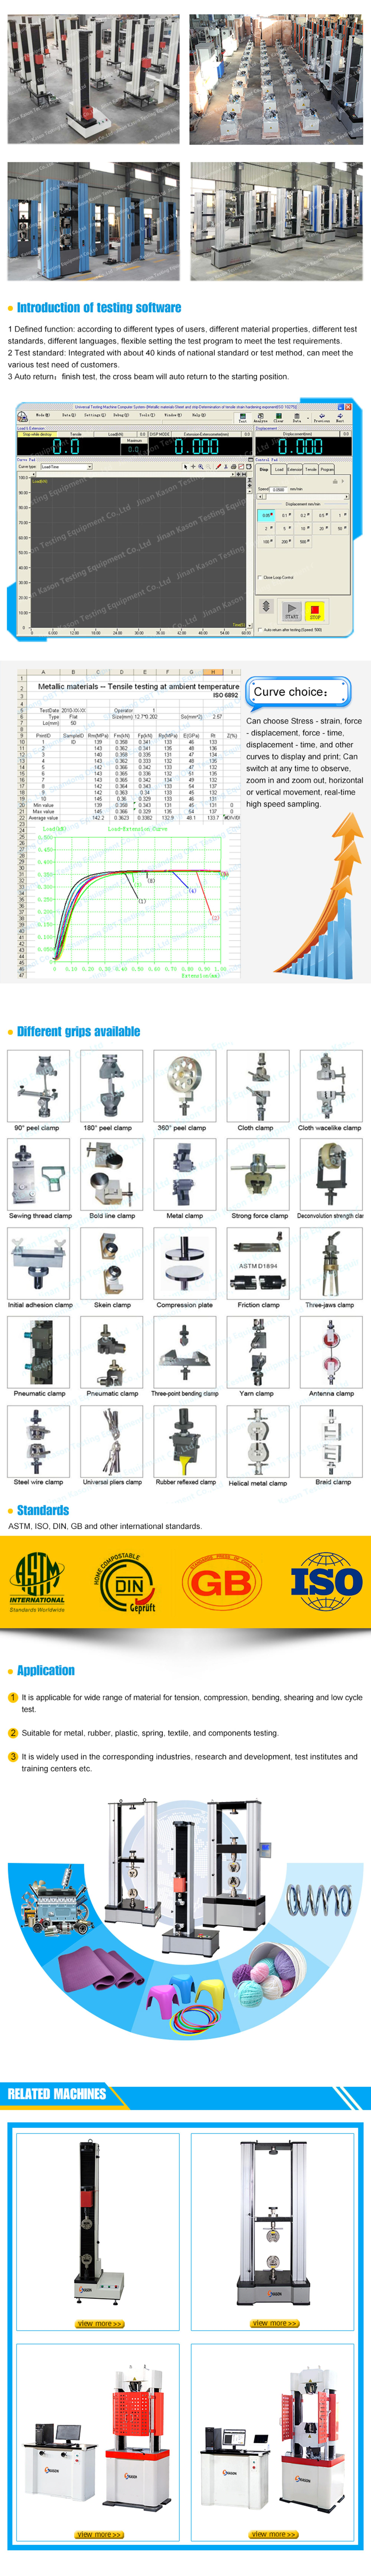 Pneumatic Grips/ Pneumatic Fixture with Pneumatic Pump/Grips for Universal Testing Machine